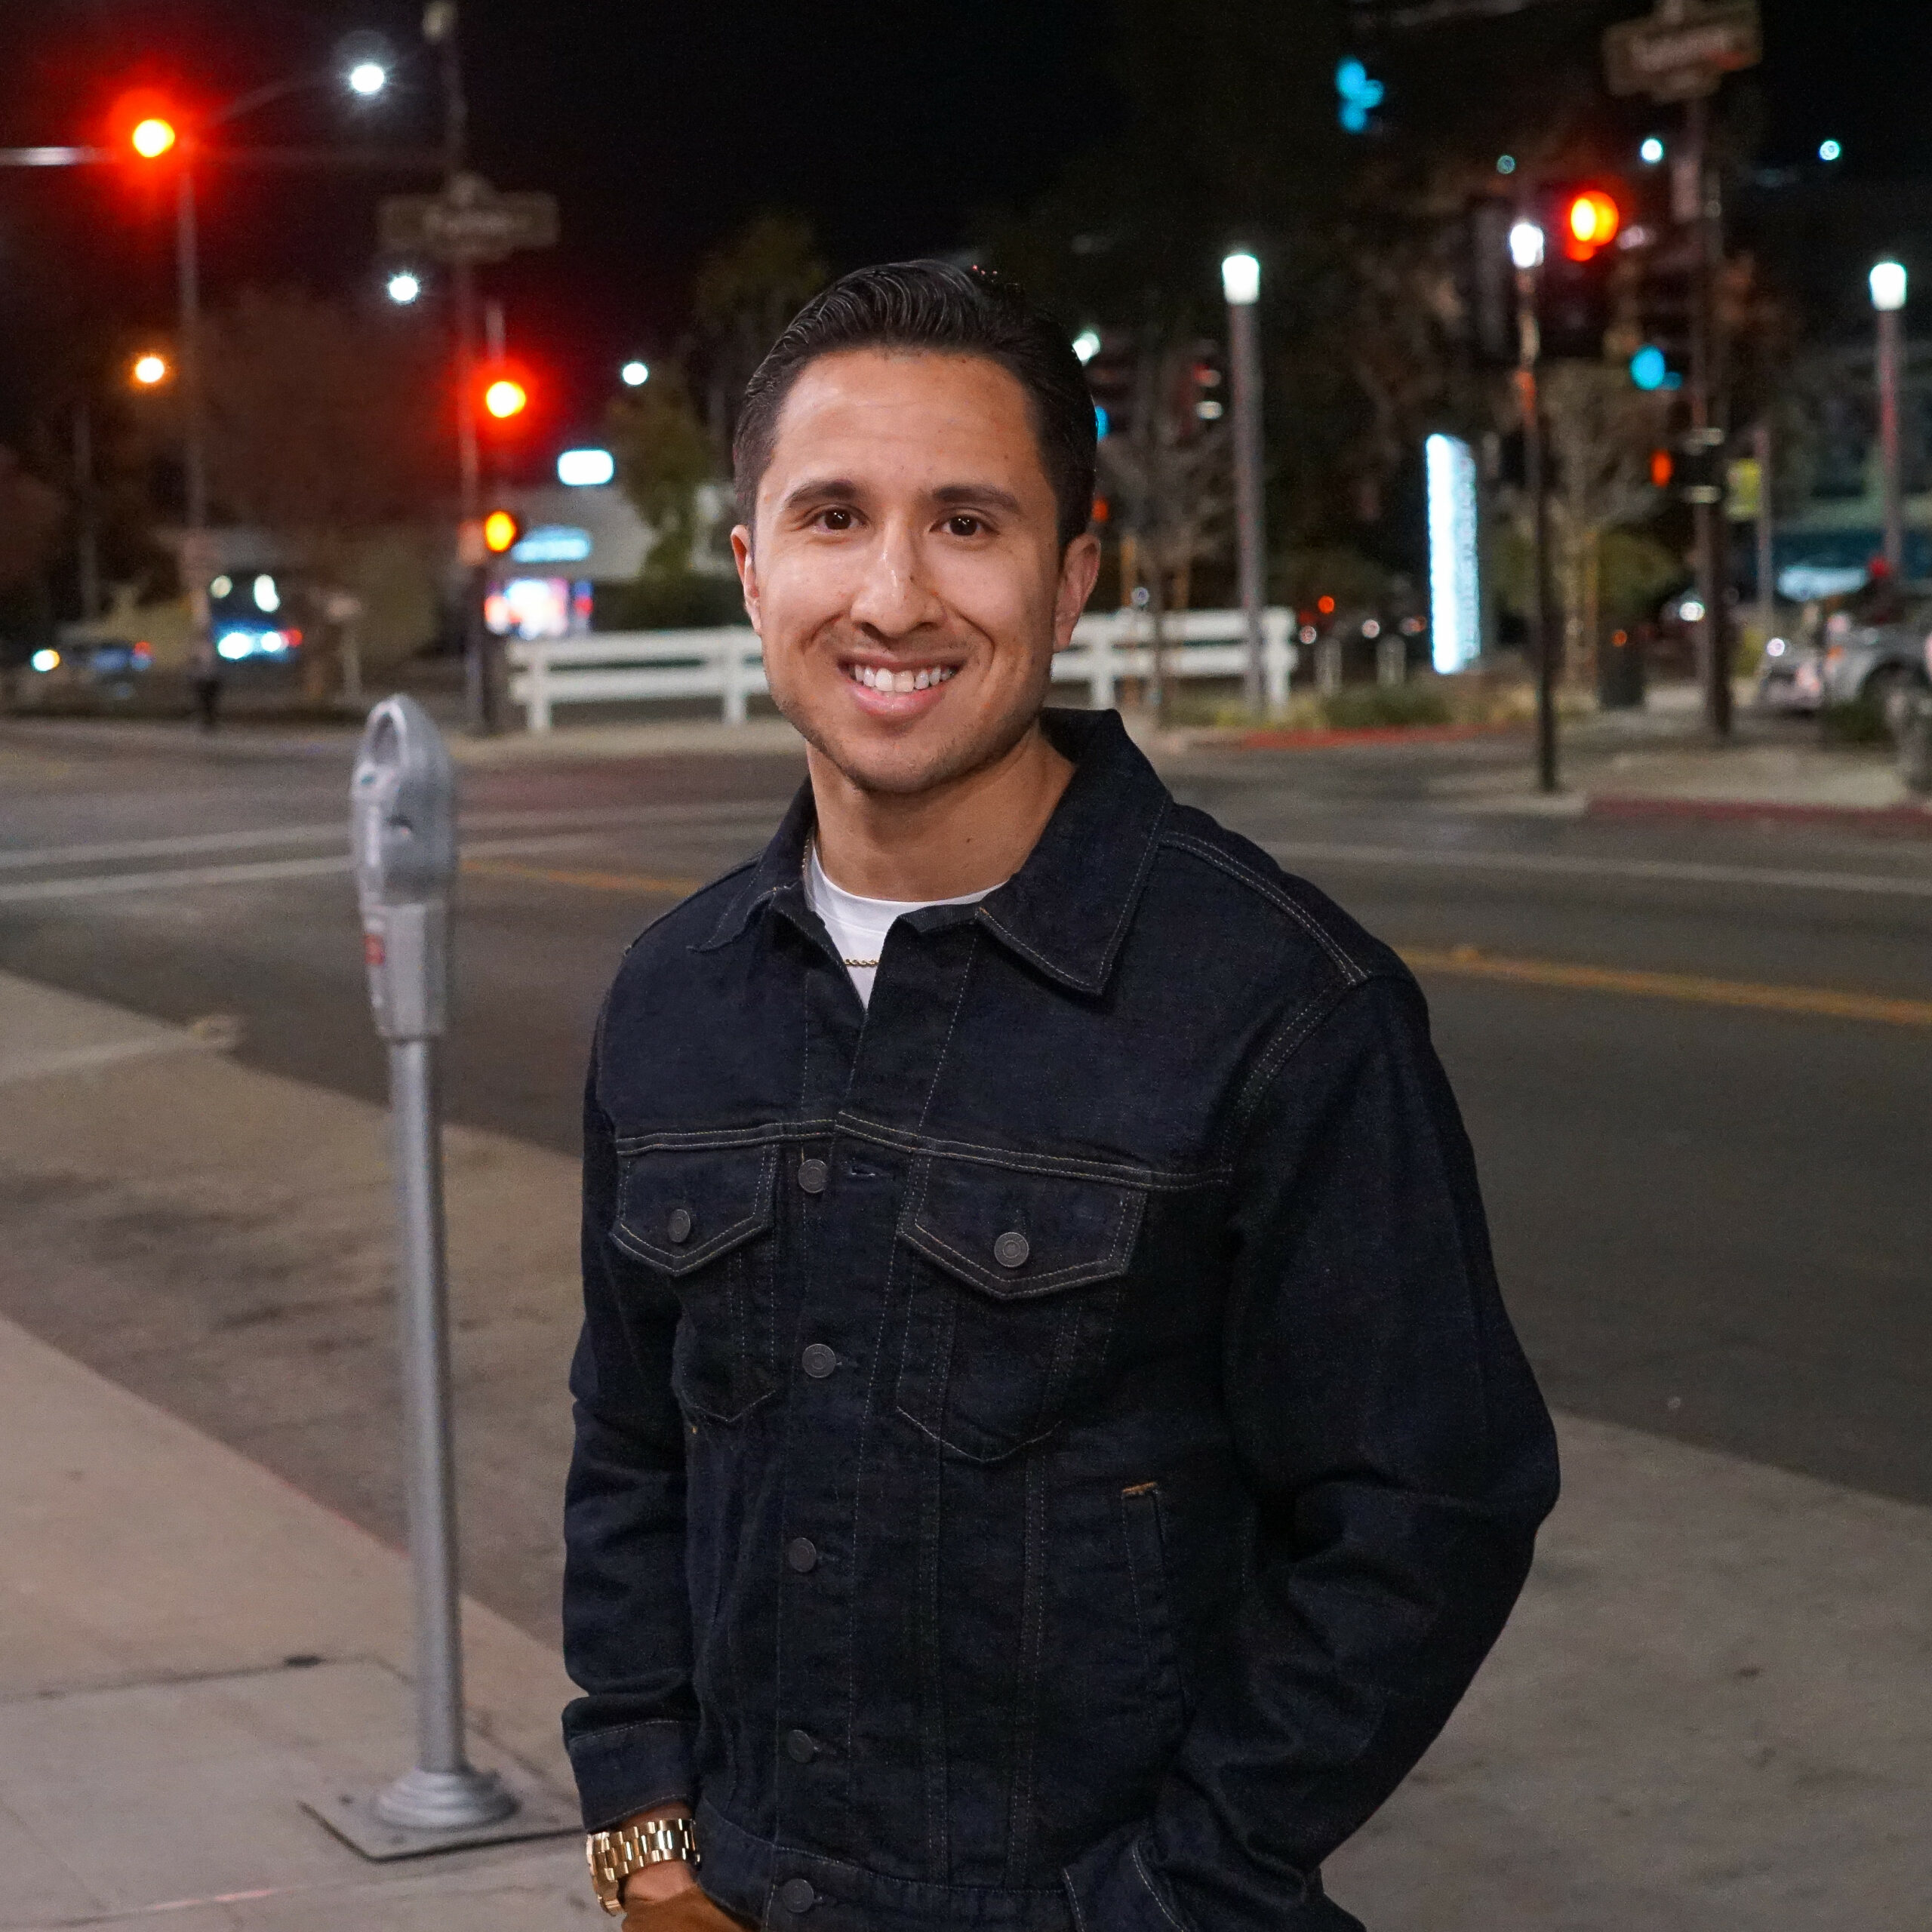 20 Life Lessons to Live By In 2020 by Star Entrepreneur Eric Santos